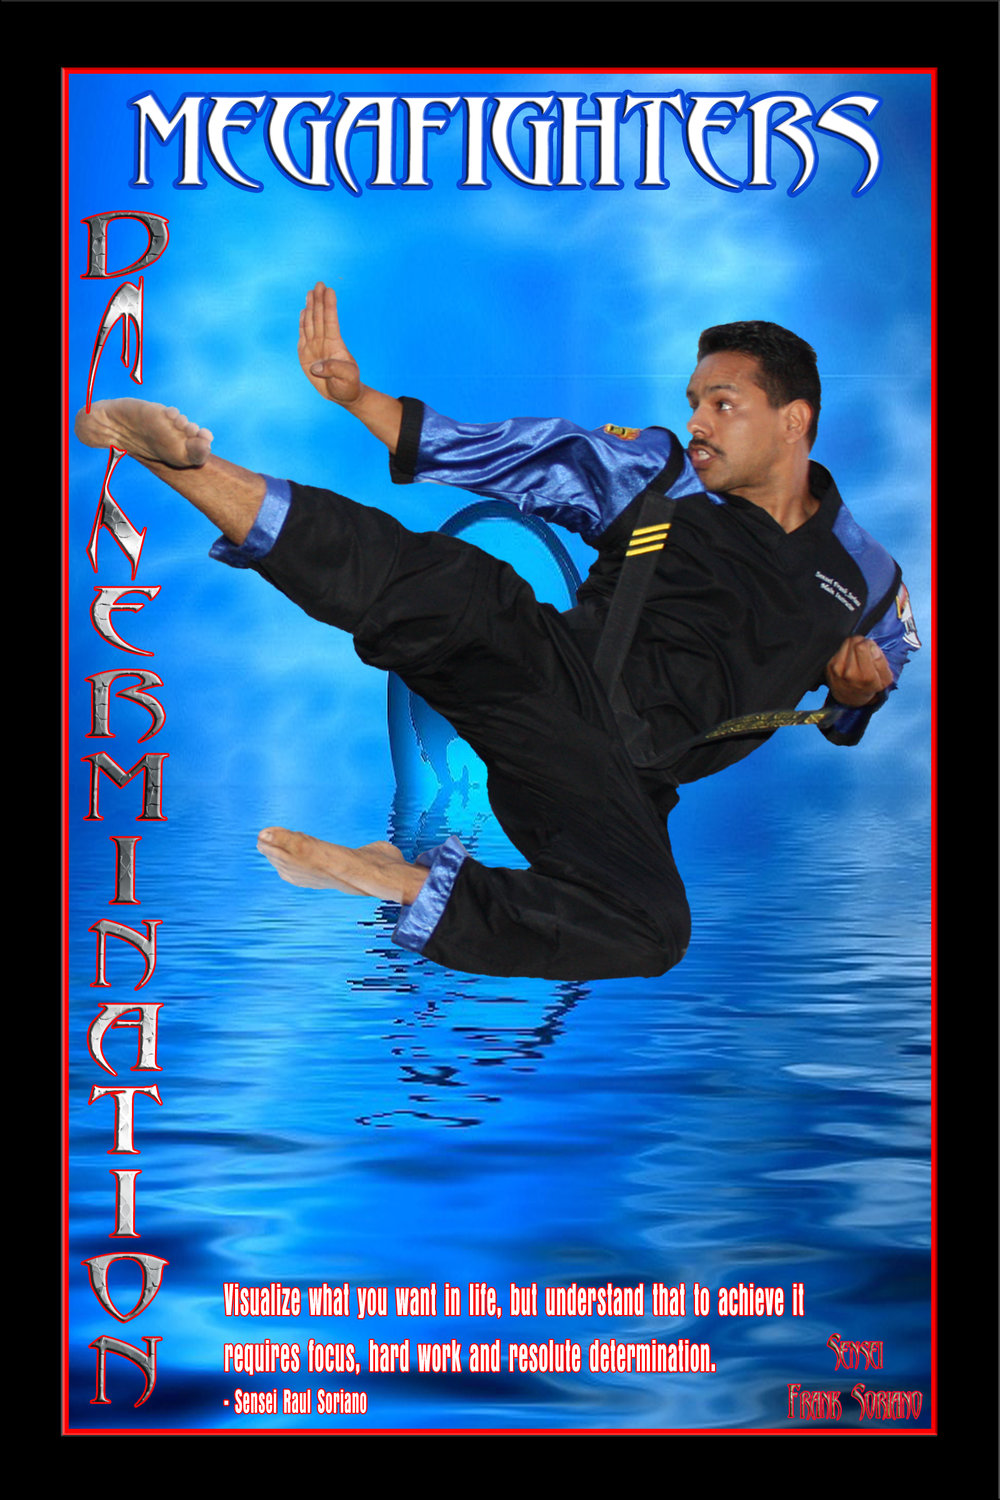 Francisco Soriano, Main Instructor